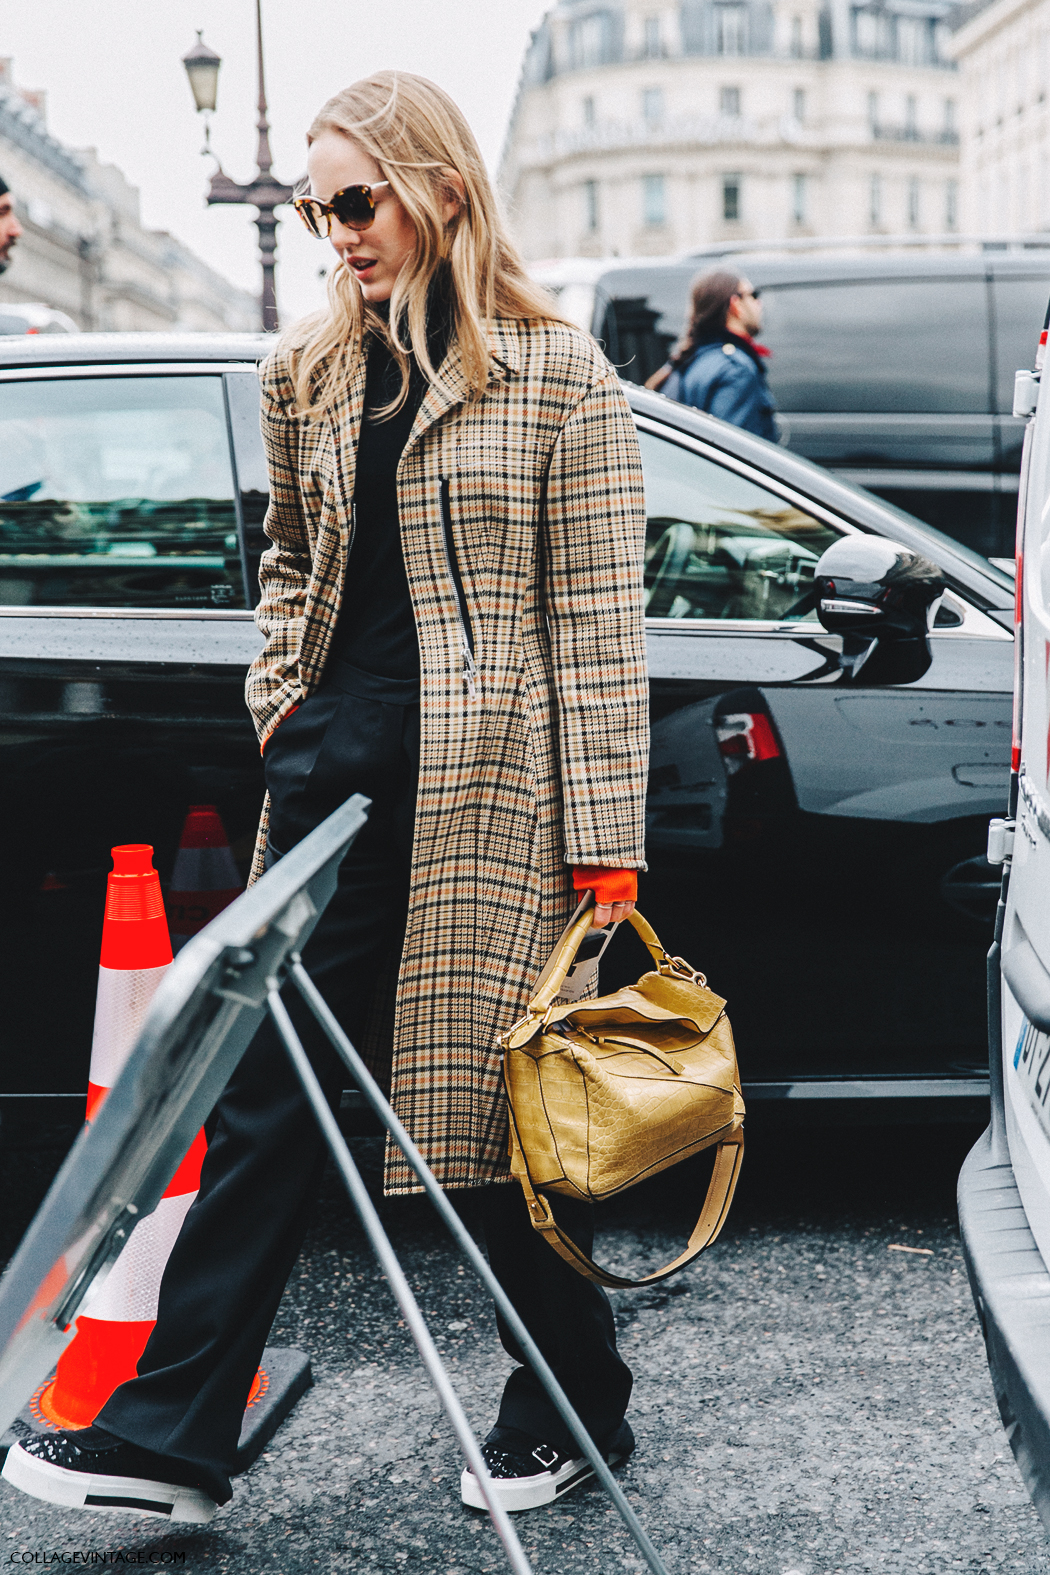 PFW-Paris_Fashion_Week_Fall_2016-Street_Style-Collage_Vintage-Stella_McCartney-Alexandra_Karl-Loewe_Puzzle-Checked_COat-Sneakers-